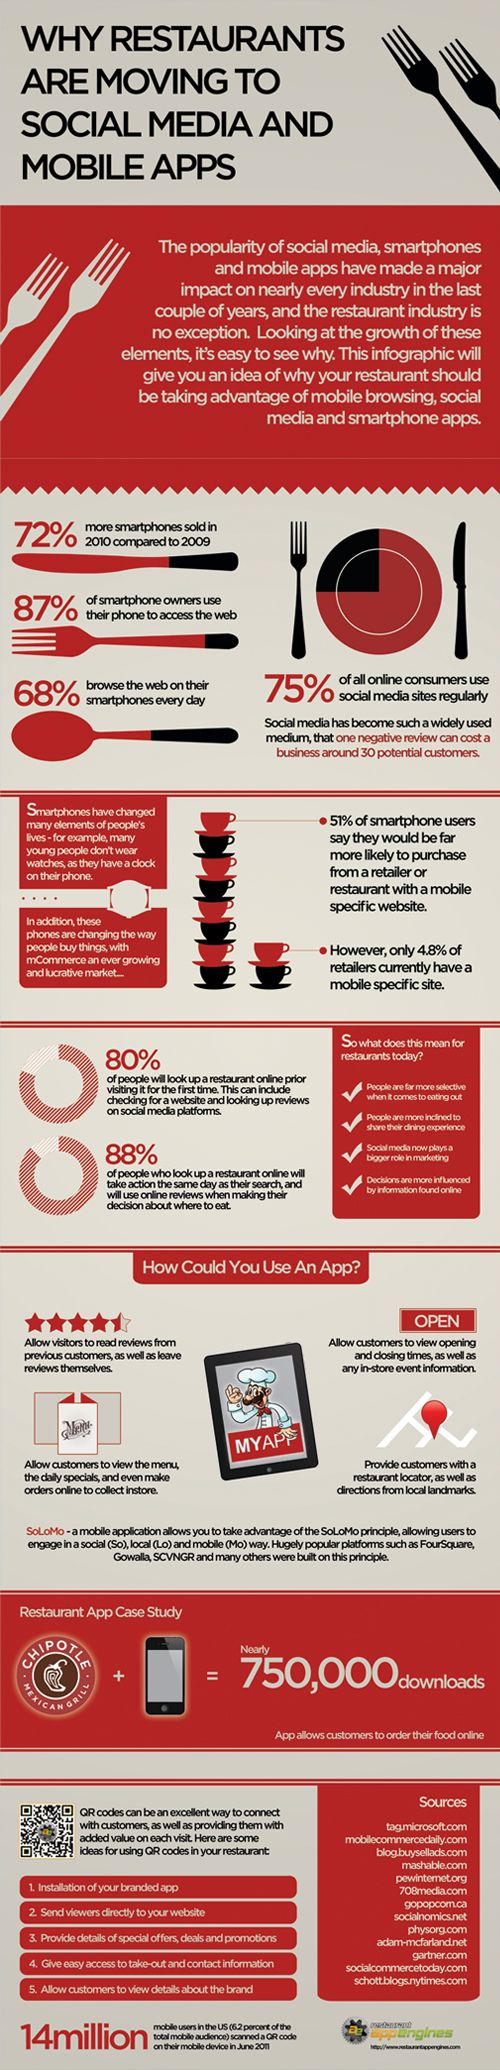 Why Restaurants Are Moving Towards Social Media And Mobile Apps